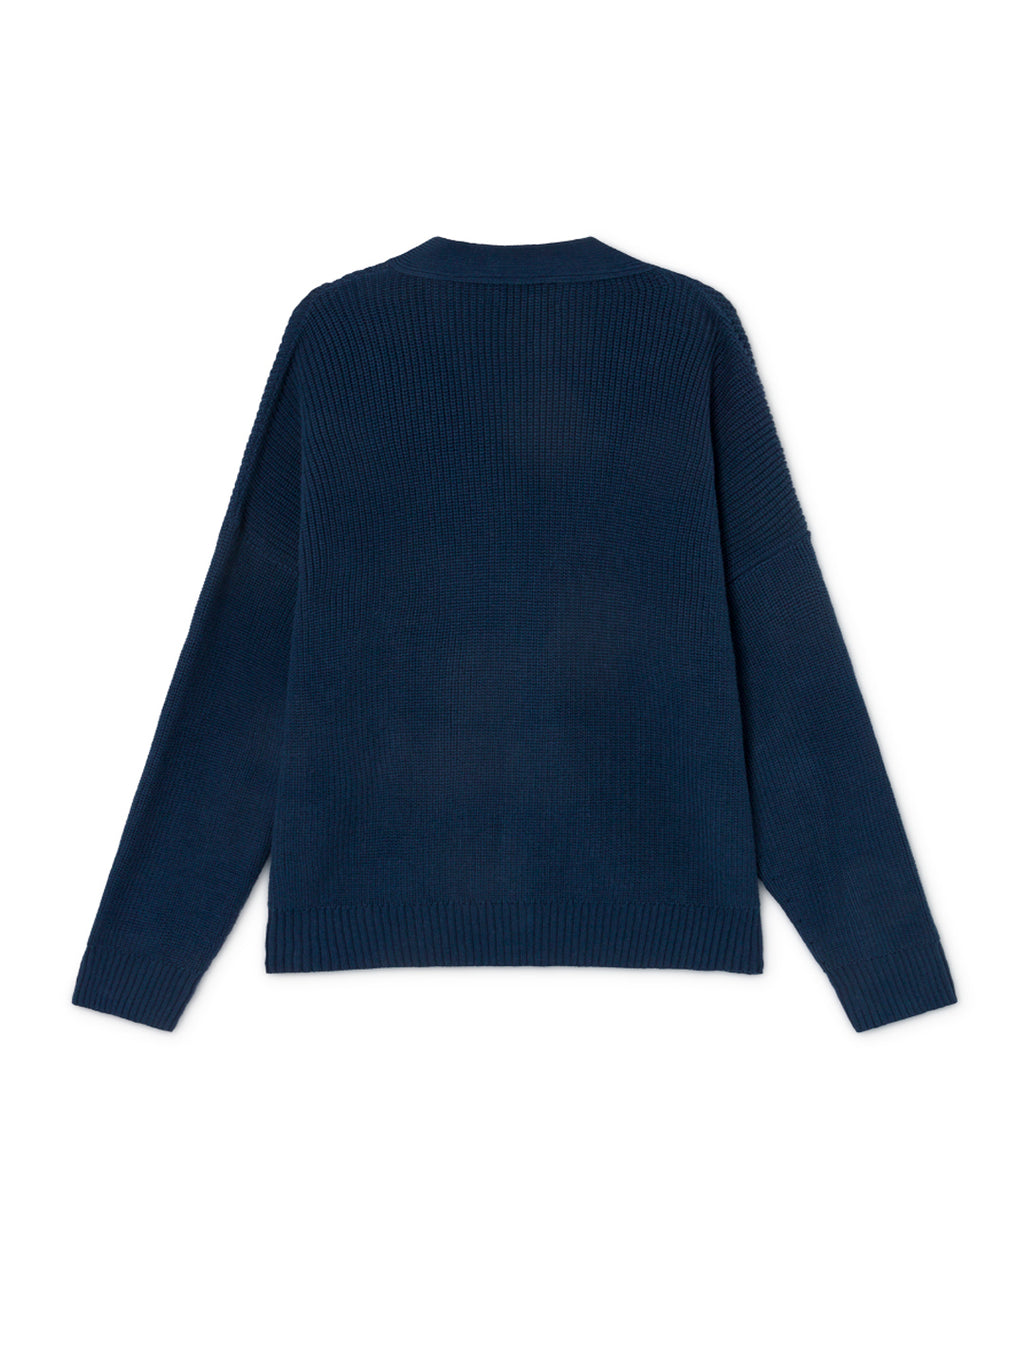 TWOTHIRDS Womens Knit: Huapi - Navy back